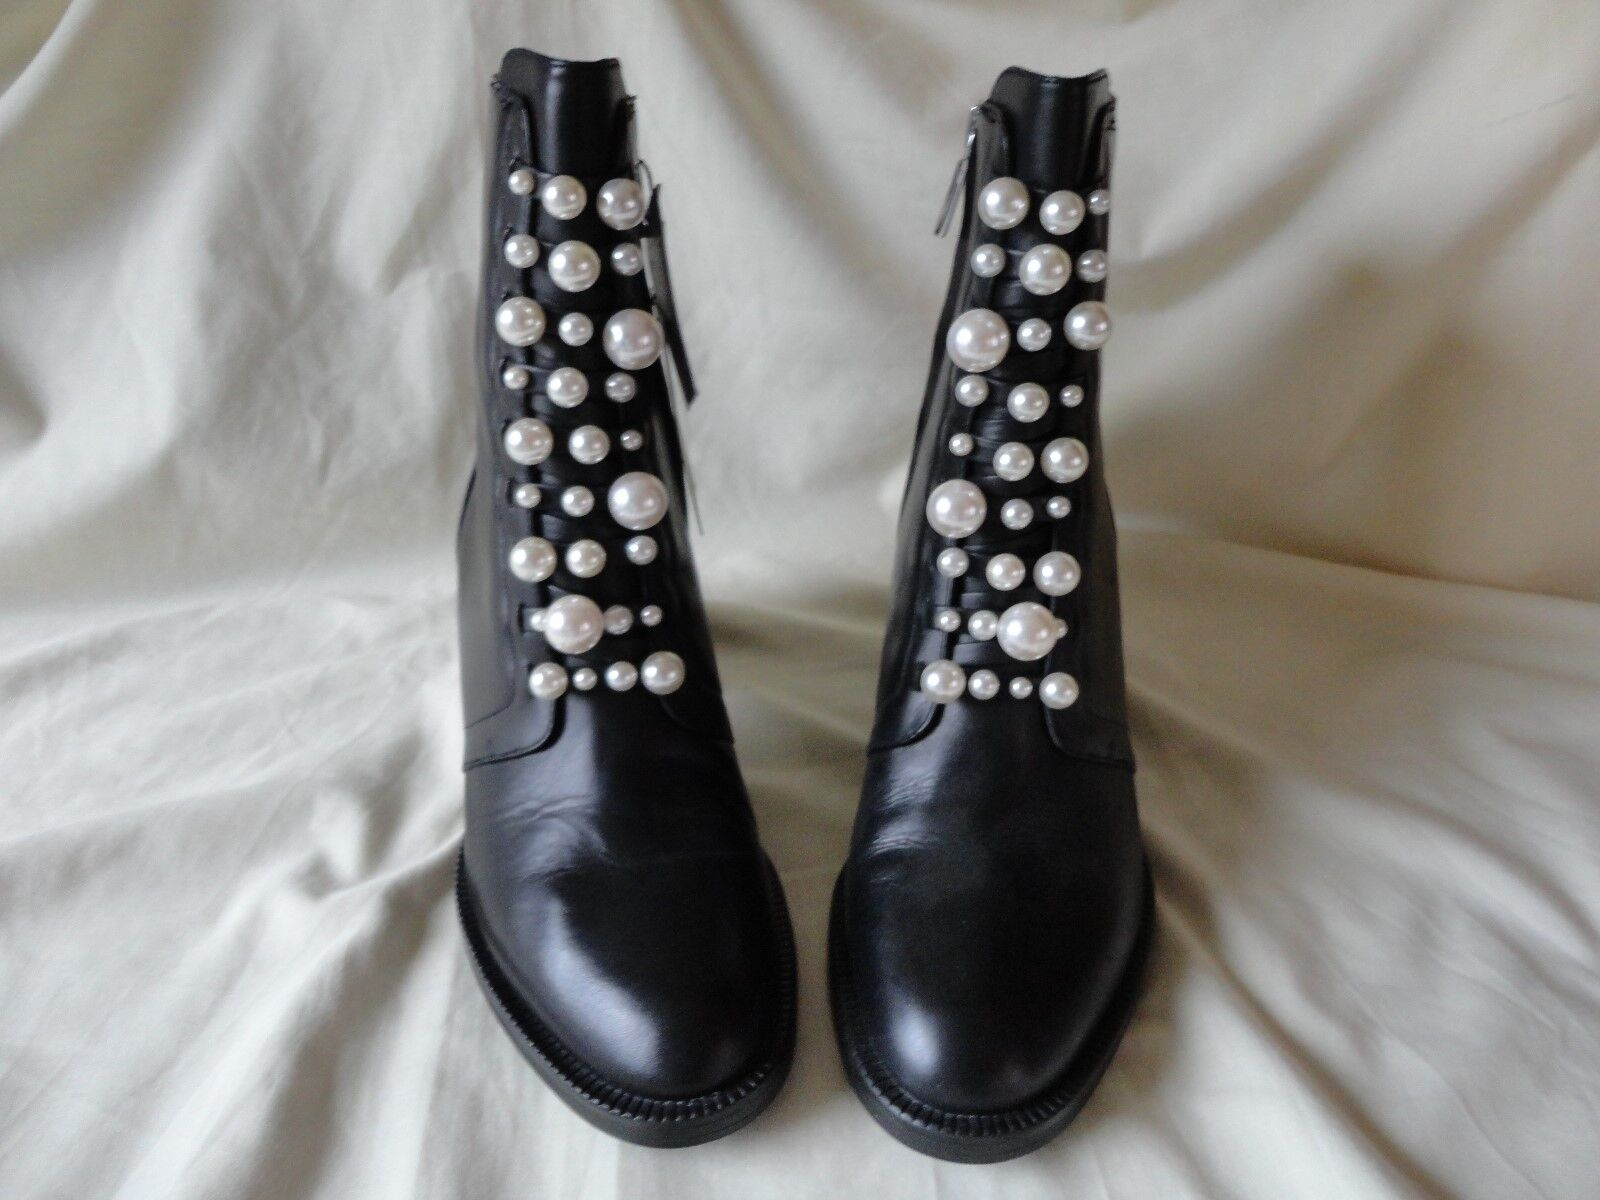 ZARA BLACK BE LEATHER ANKLE BOOT WILL BE BLACK SENT SIGNED RECORDED dca0fb